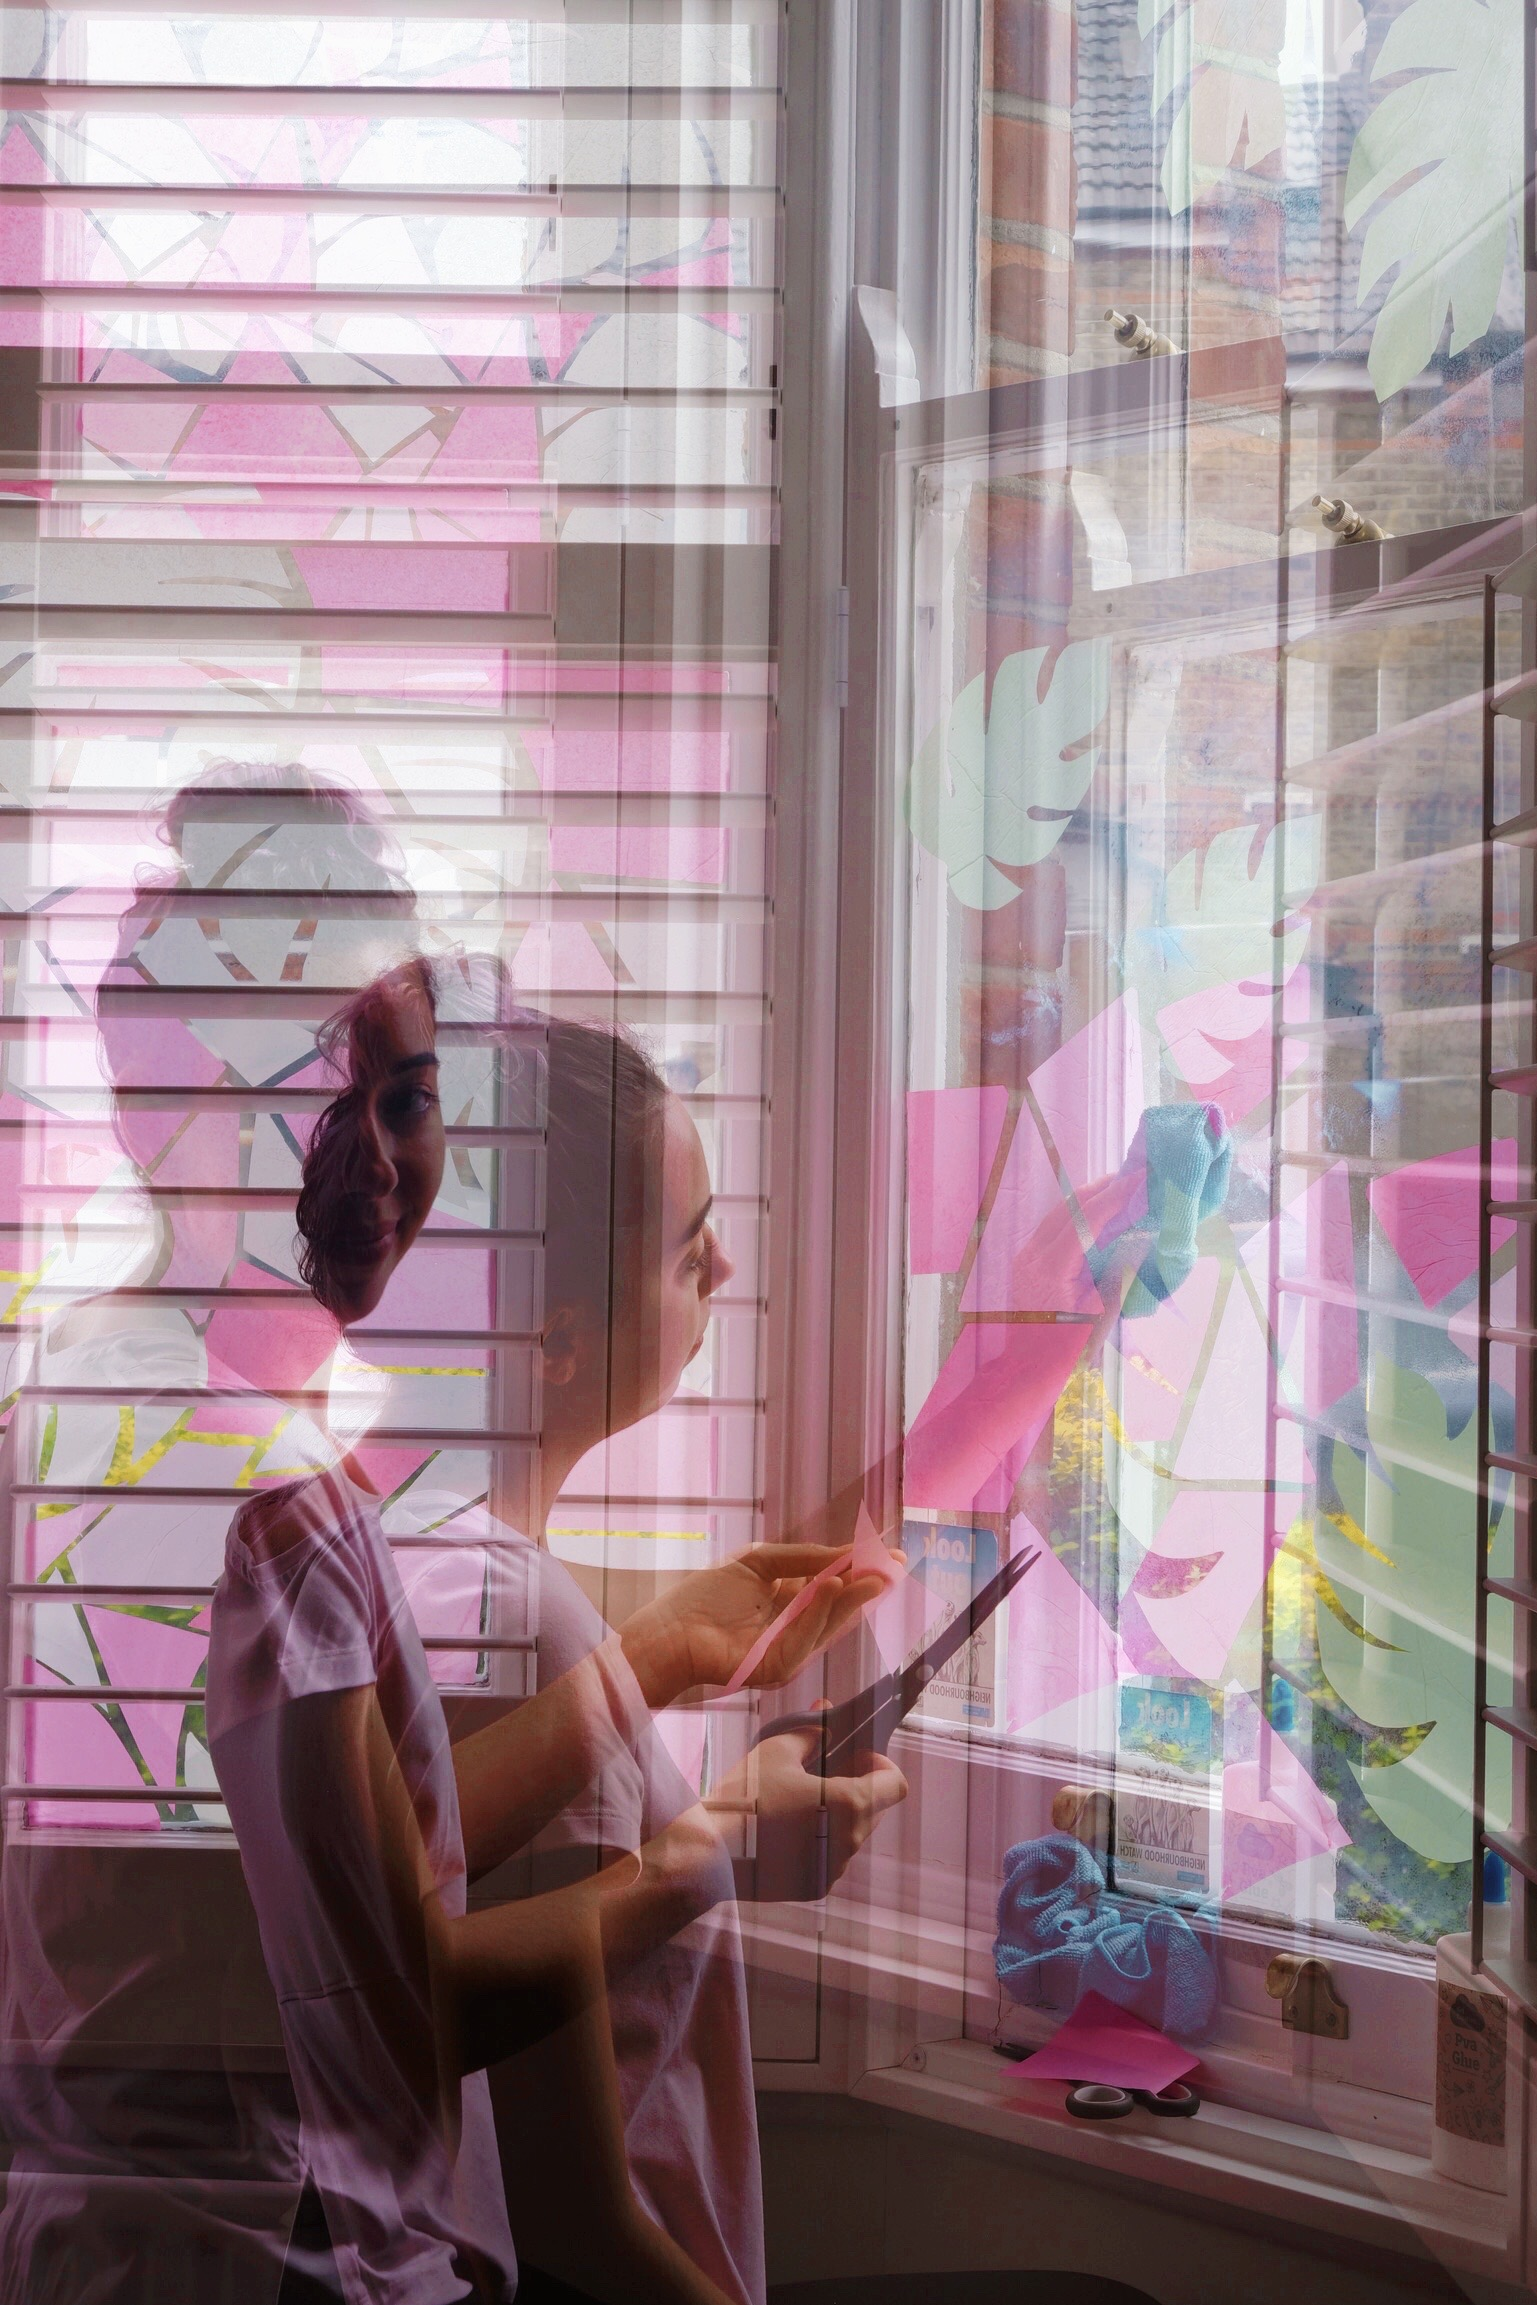 double exposure art process window design art installation stained glass